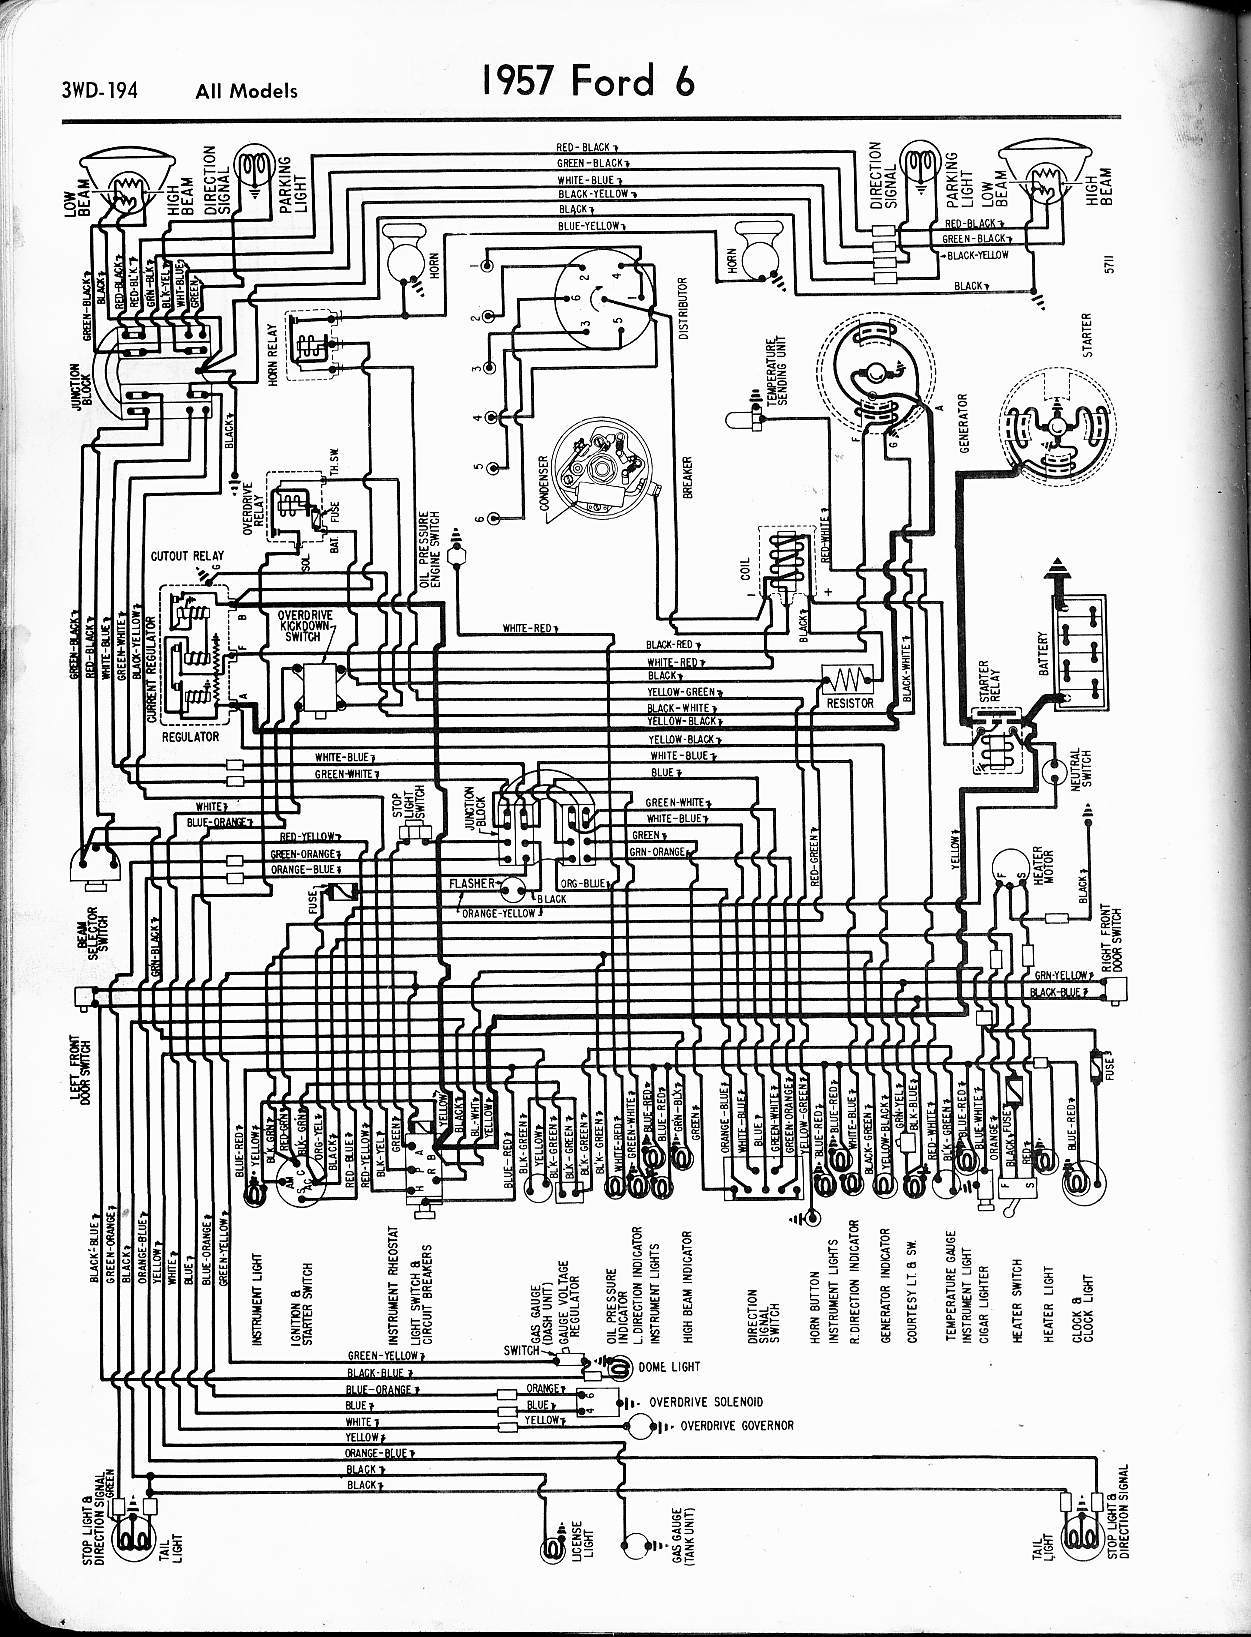 Diagram 1962 Ford Truck Wiring Diagram Full Version Hd Quality Wiring Diagram Schematicnow2e Angelux It